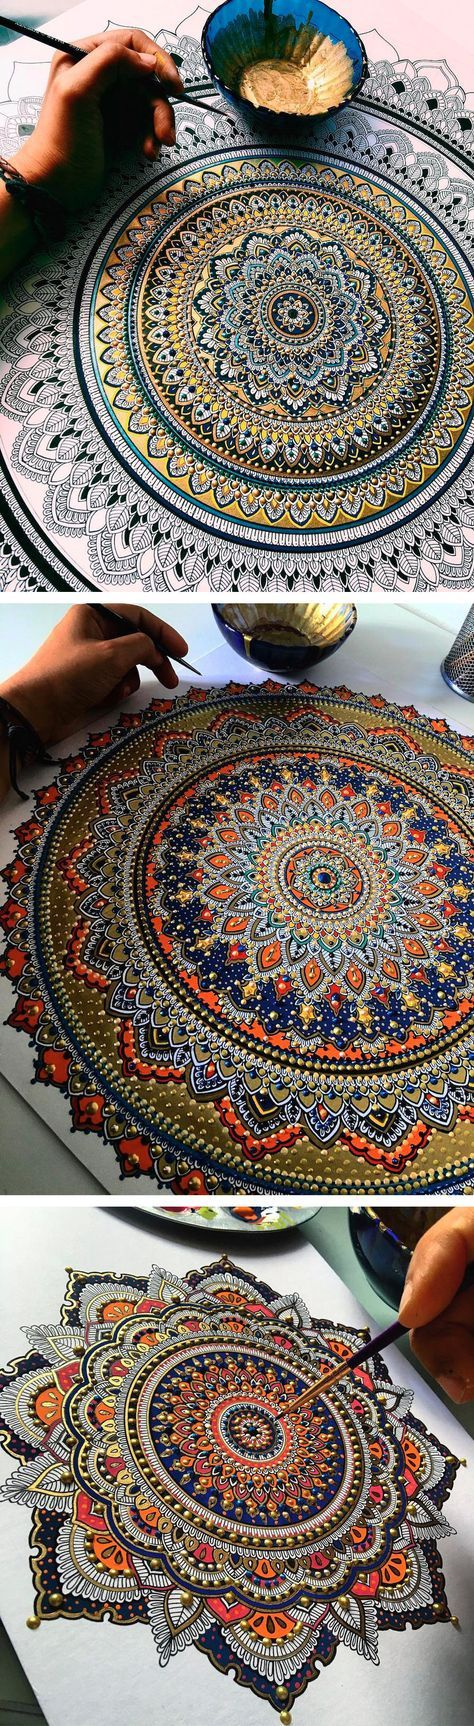 ❤⊰❁⊱ Mandala ⊰❁⊱ ~ Intricate Mandalas Gilded with Gold Leaf by Artist Asmahan A. Mosleh